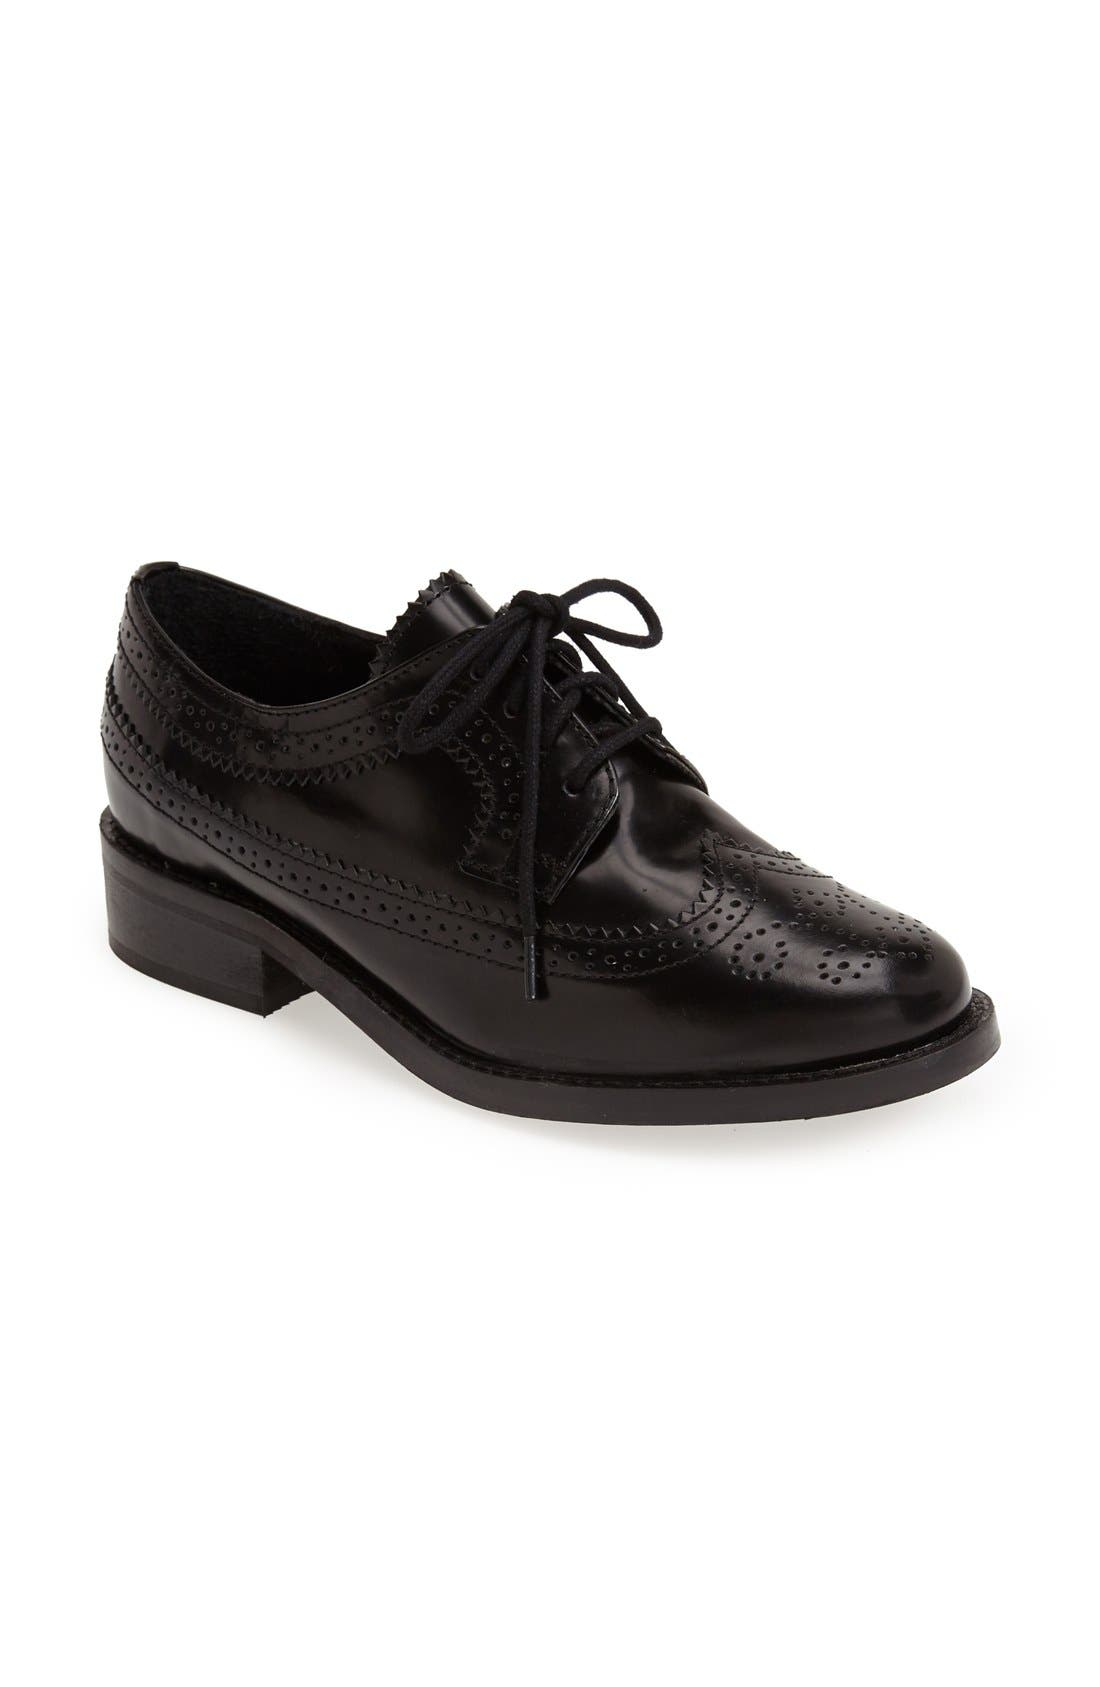 Alternate Image 1 Selected - Topshop 'Katie' Lace Up Brogue Oxford (Women)